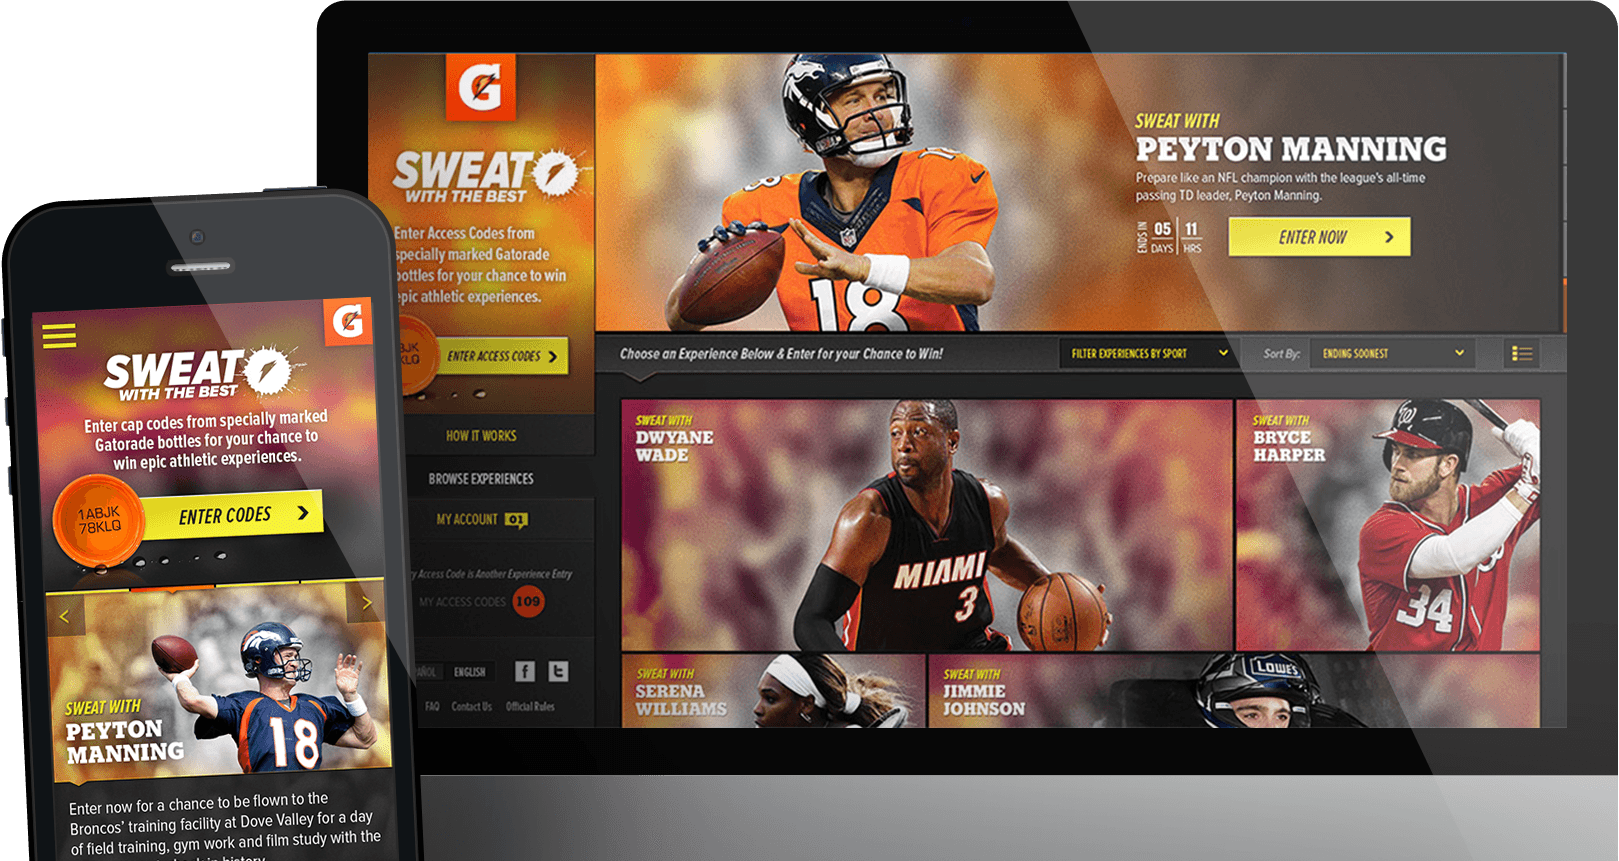 Images of the Gatorade - Sweat with the Best project